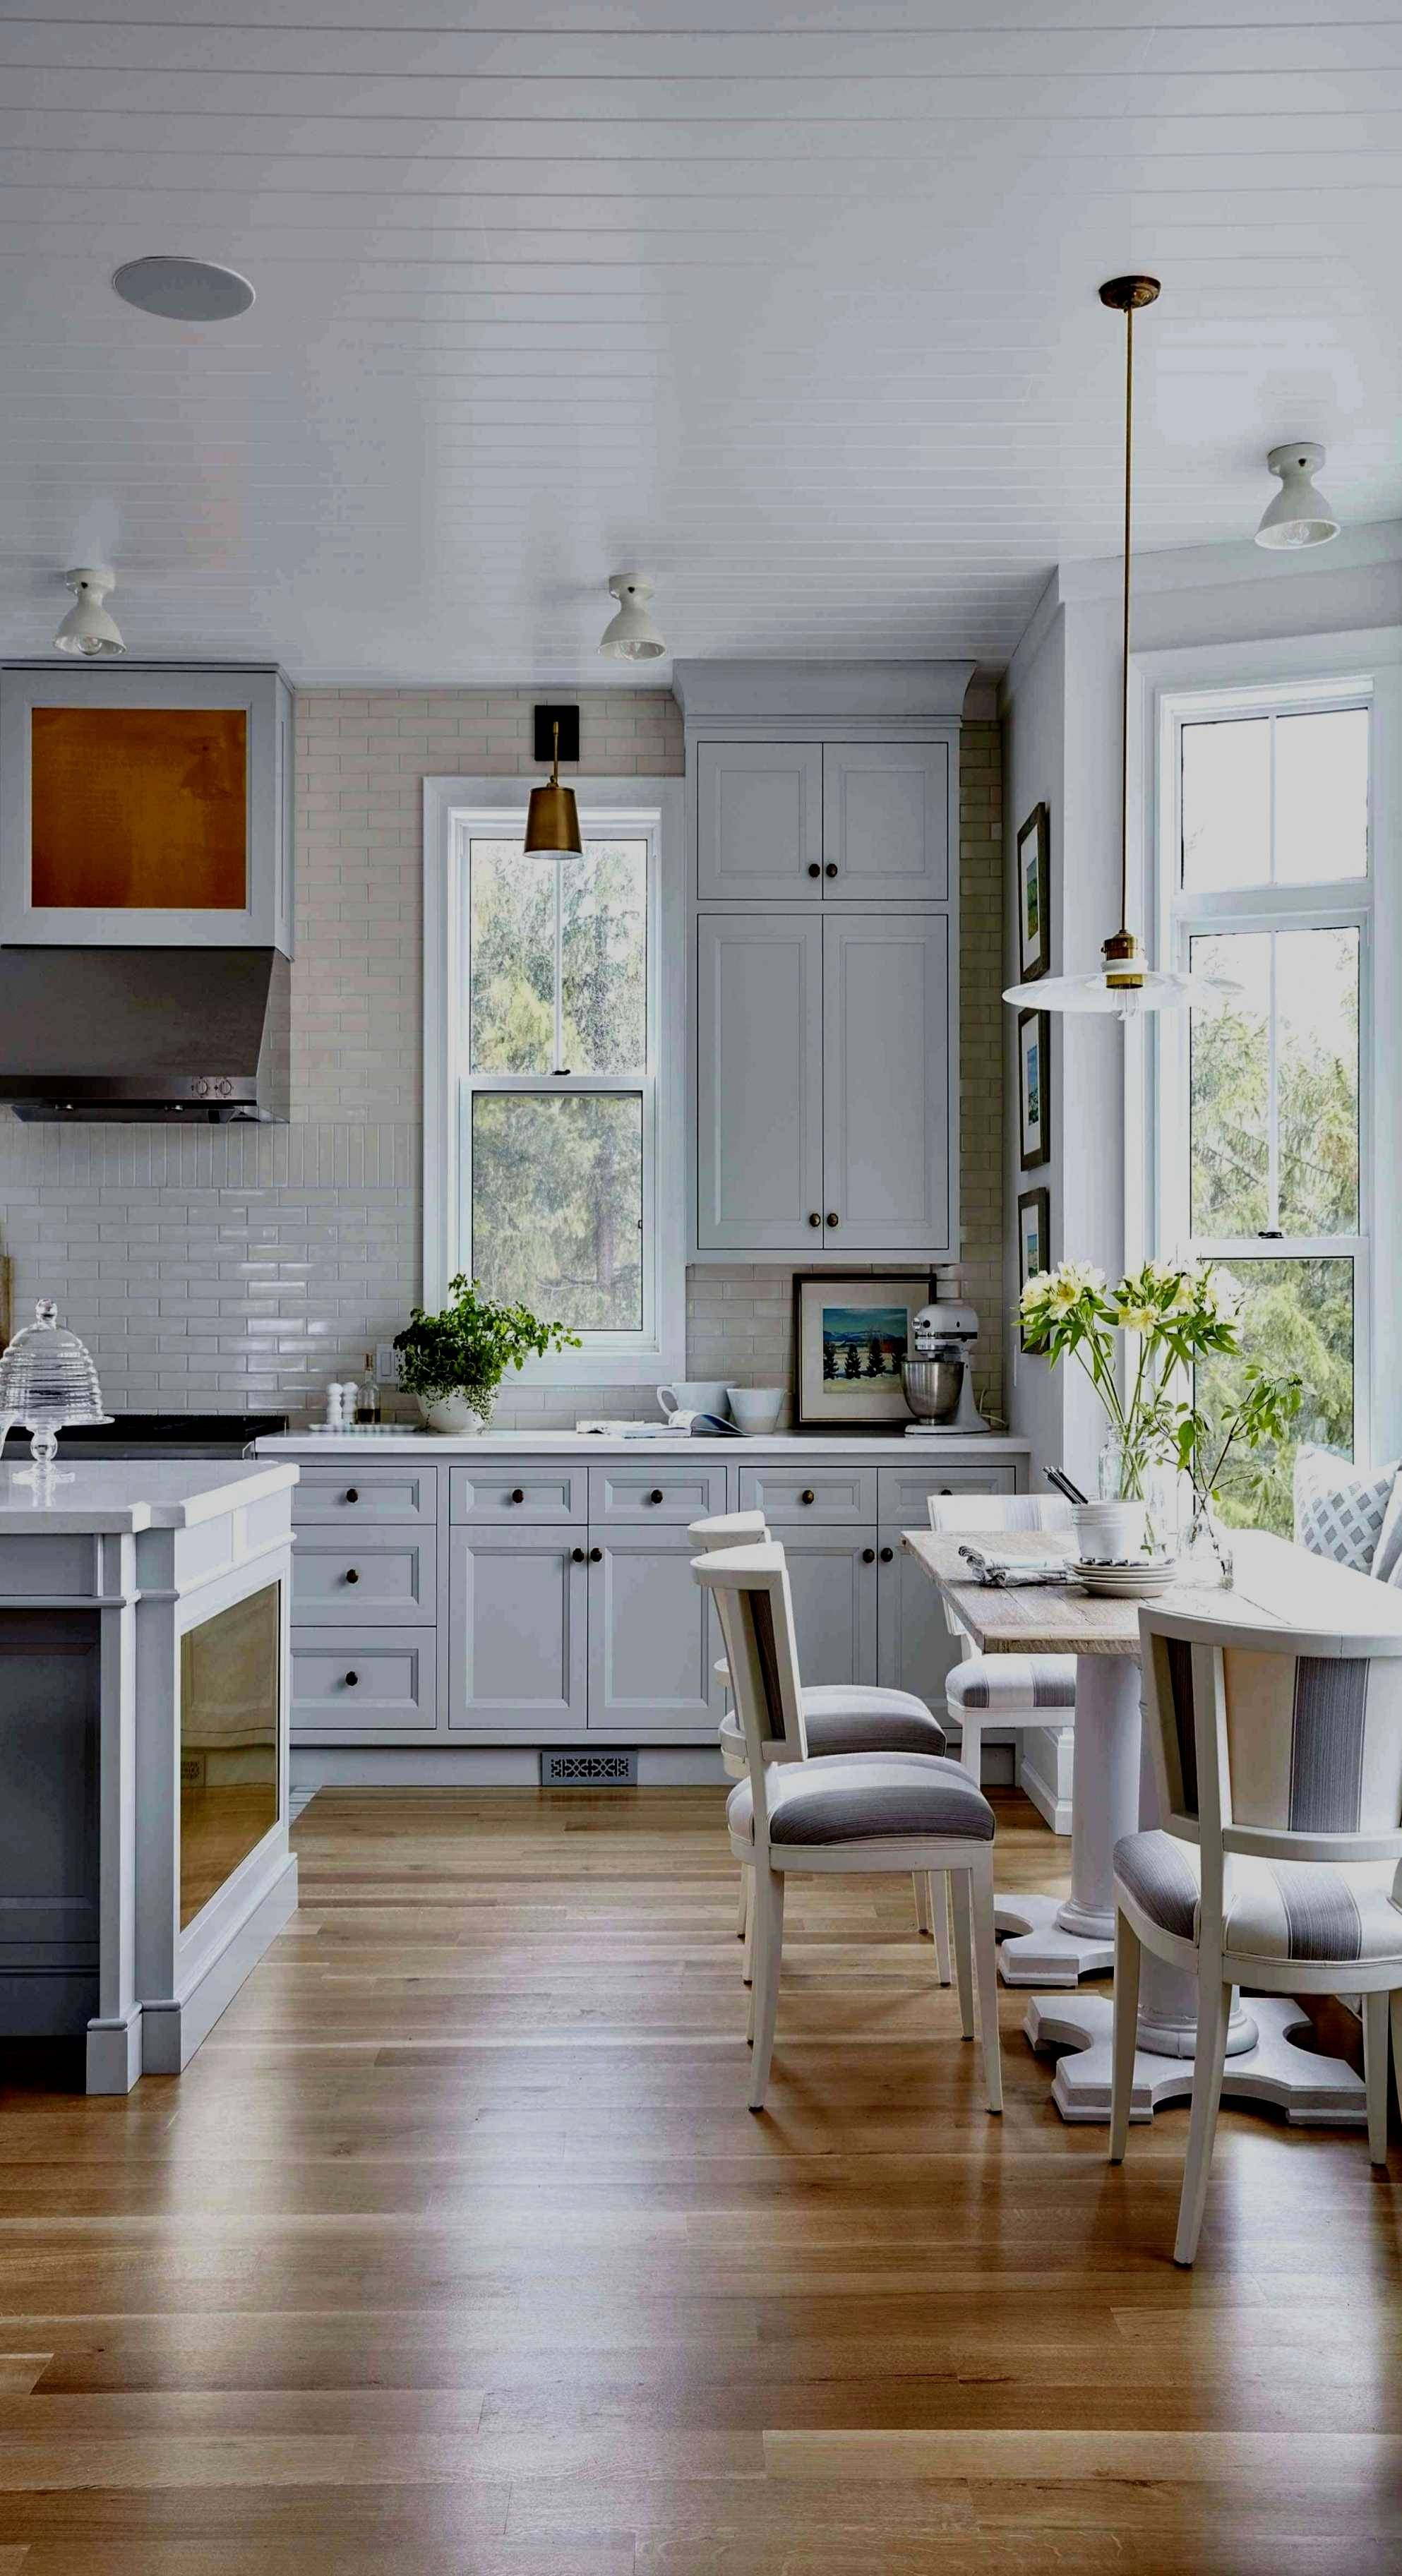 kitchen stores near me new 14 awesome kitchen color schemes kanta of kitchen stores near me